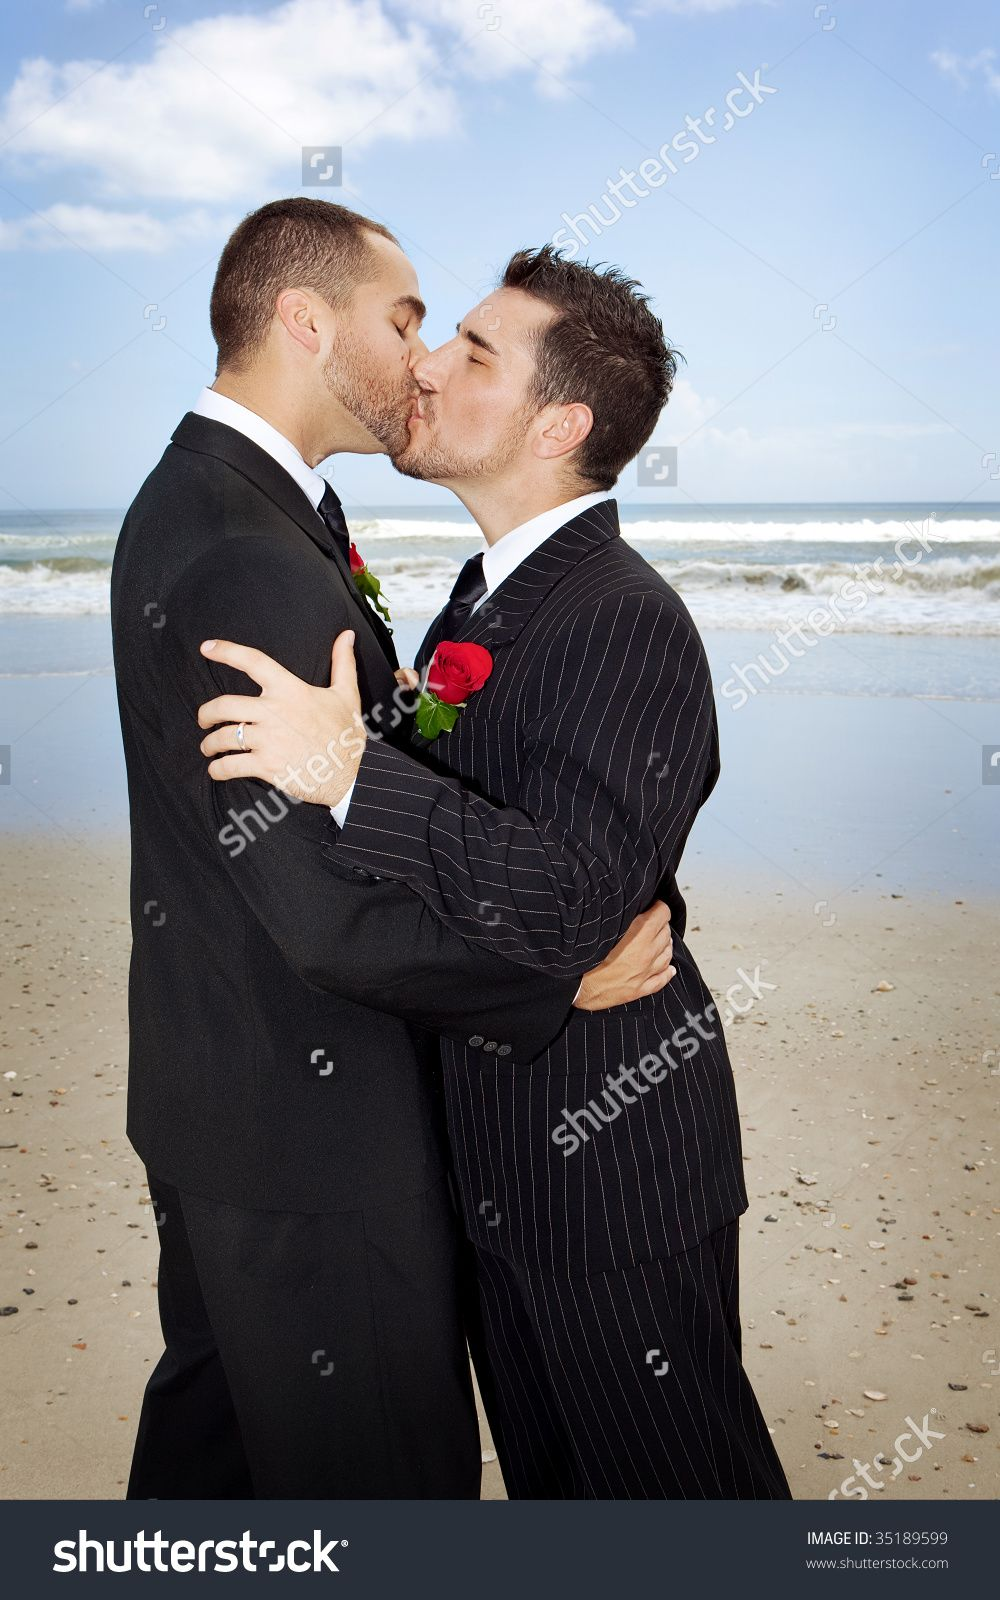 from Oscar gay and getting married in massachusetts